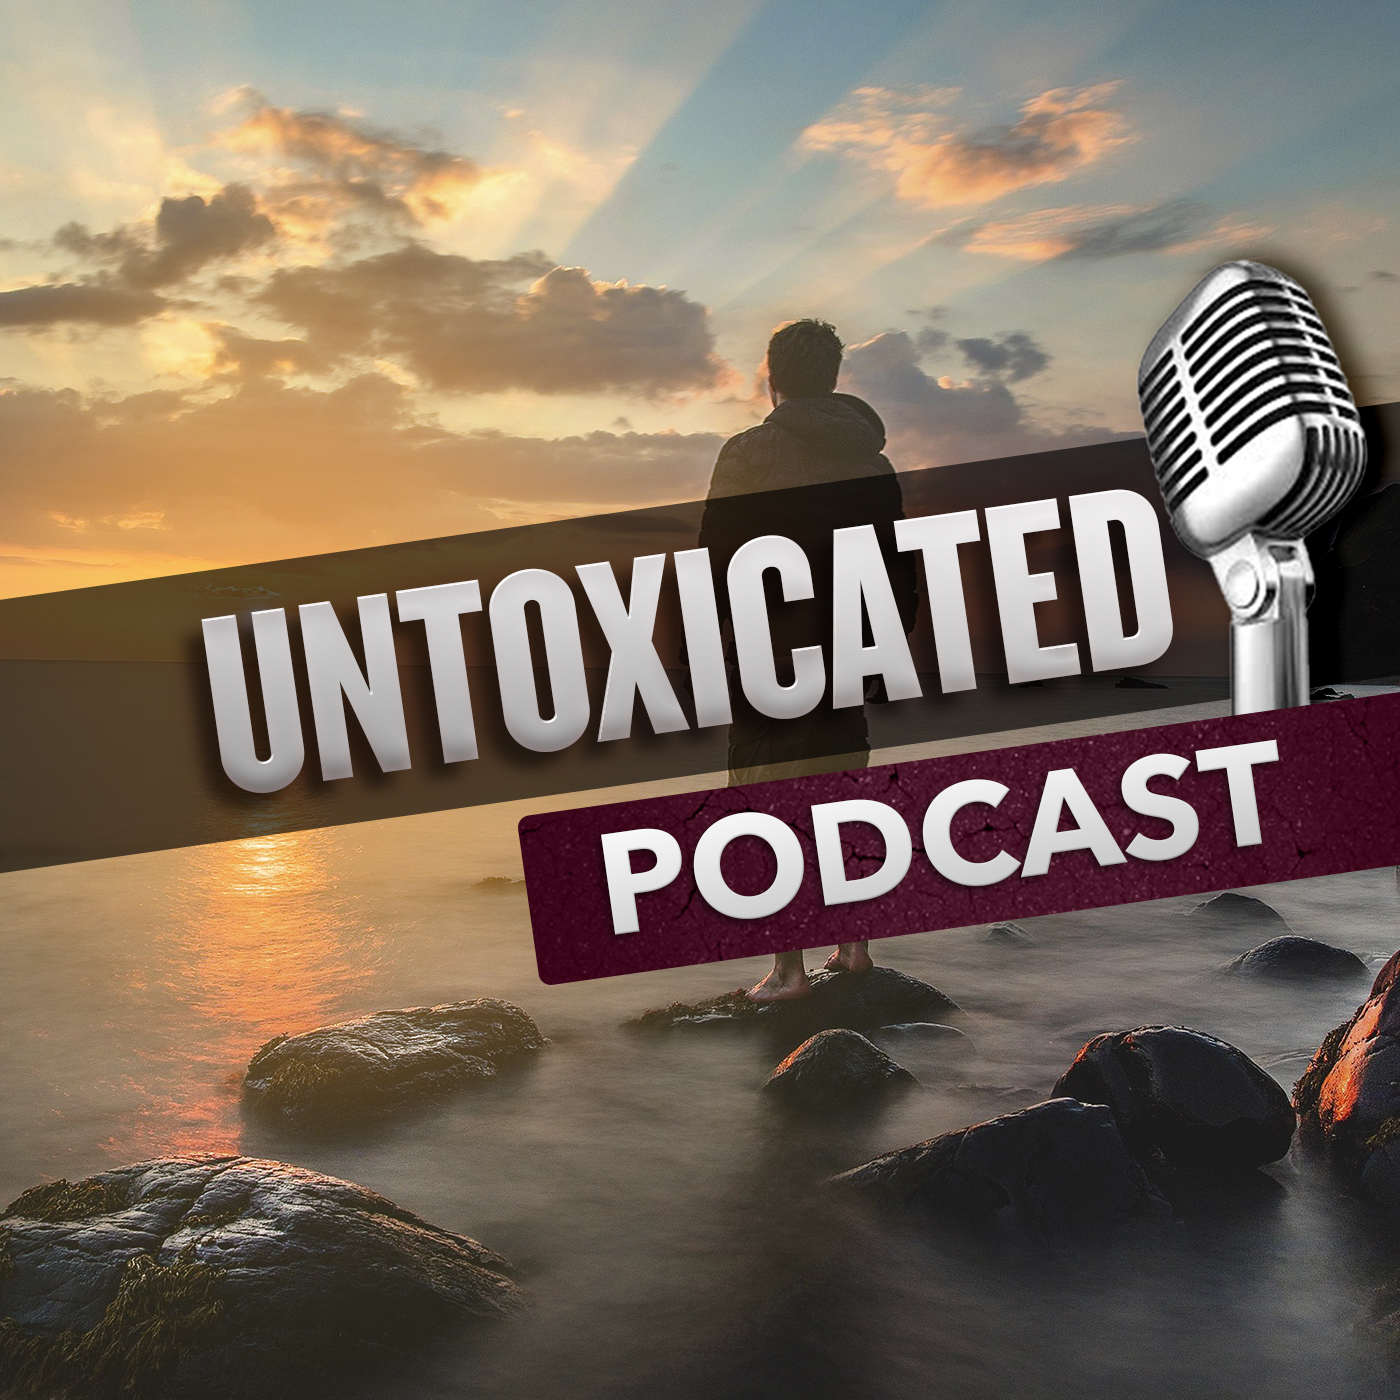 Untoxicated Podcast